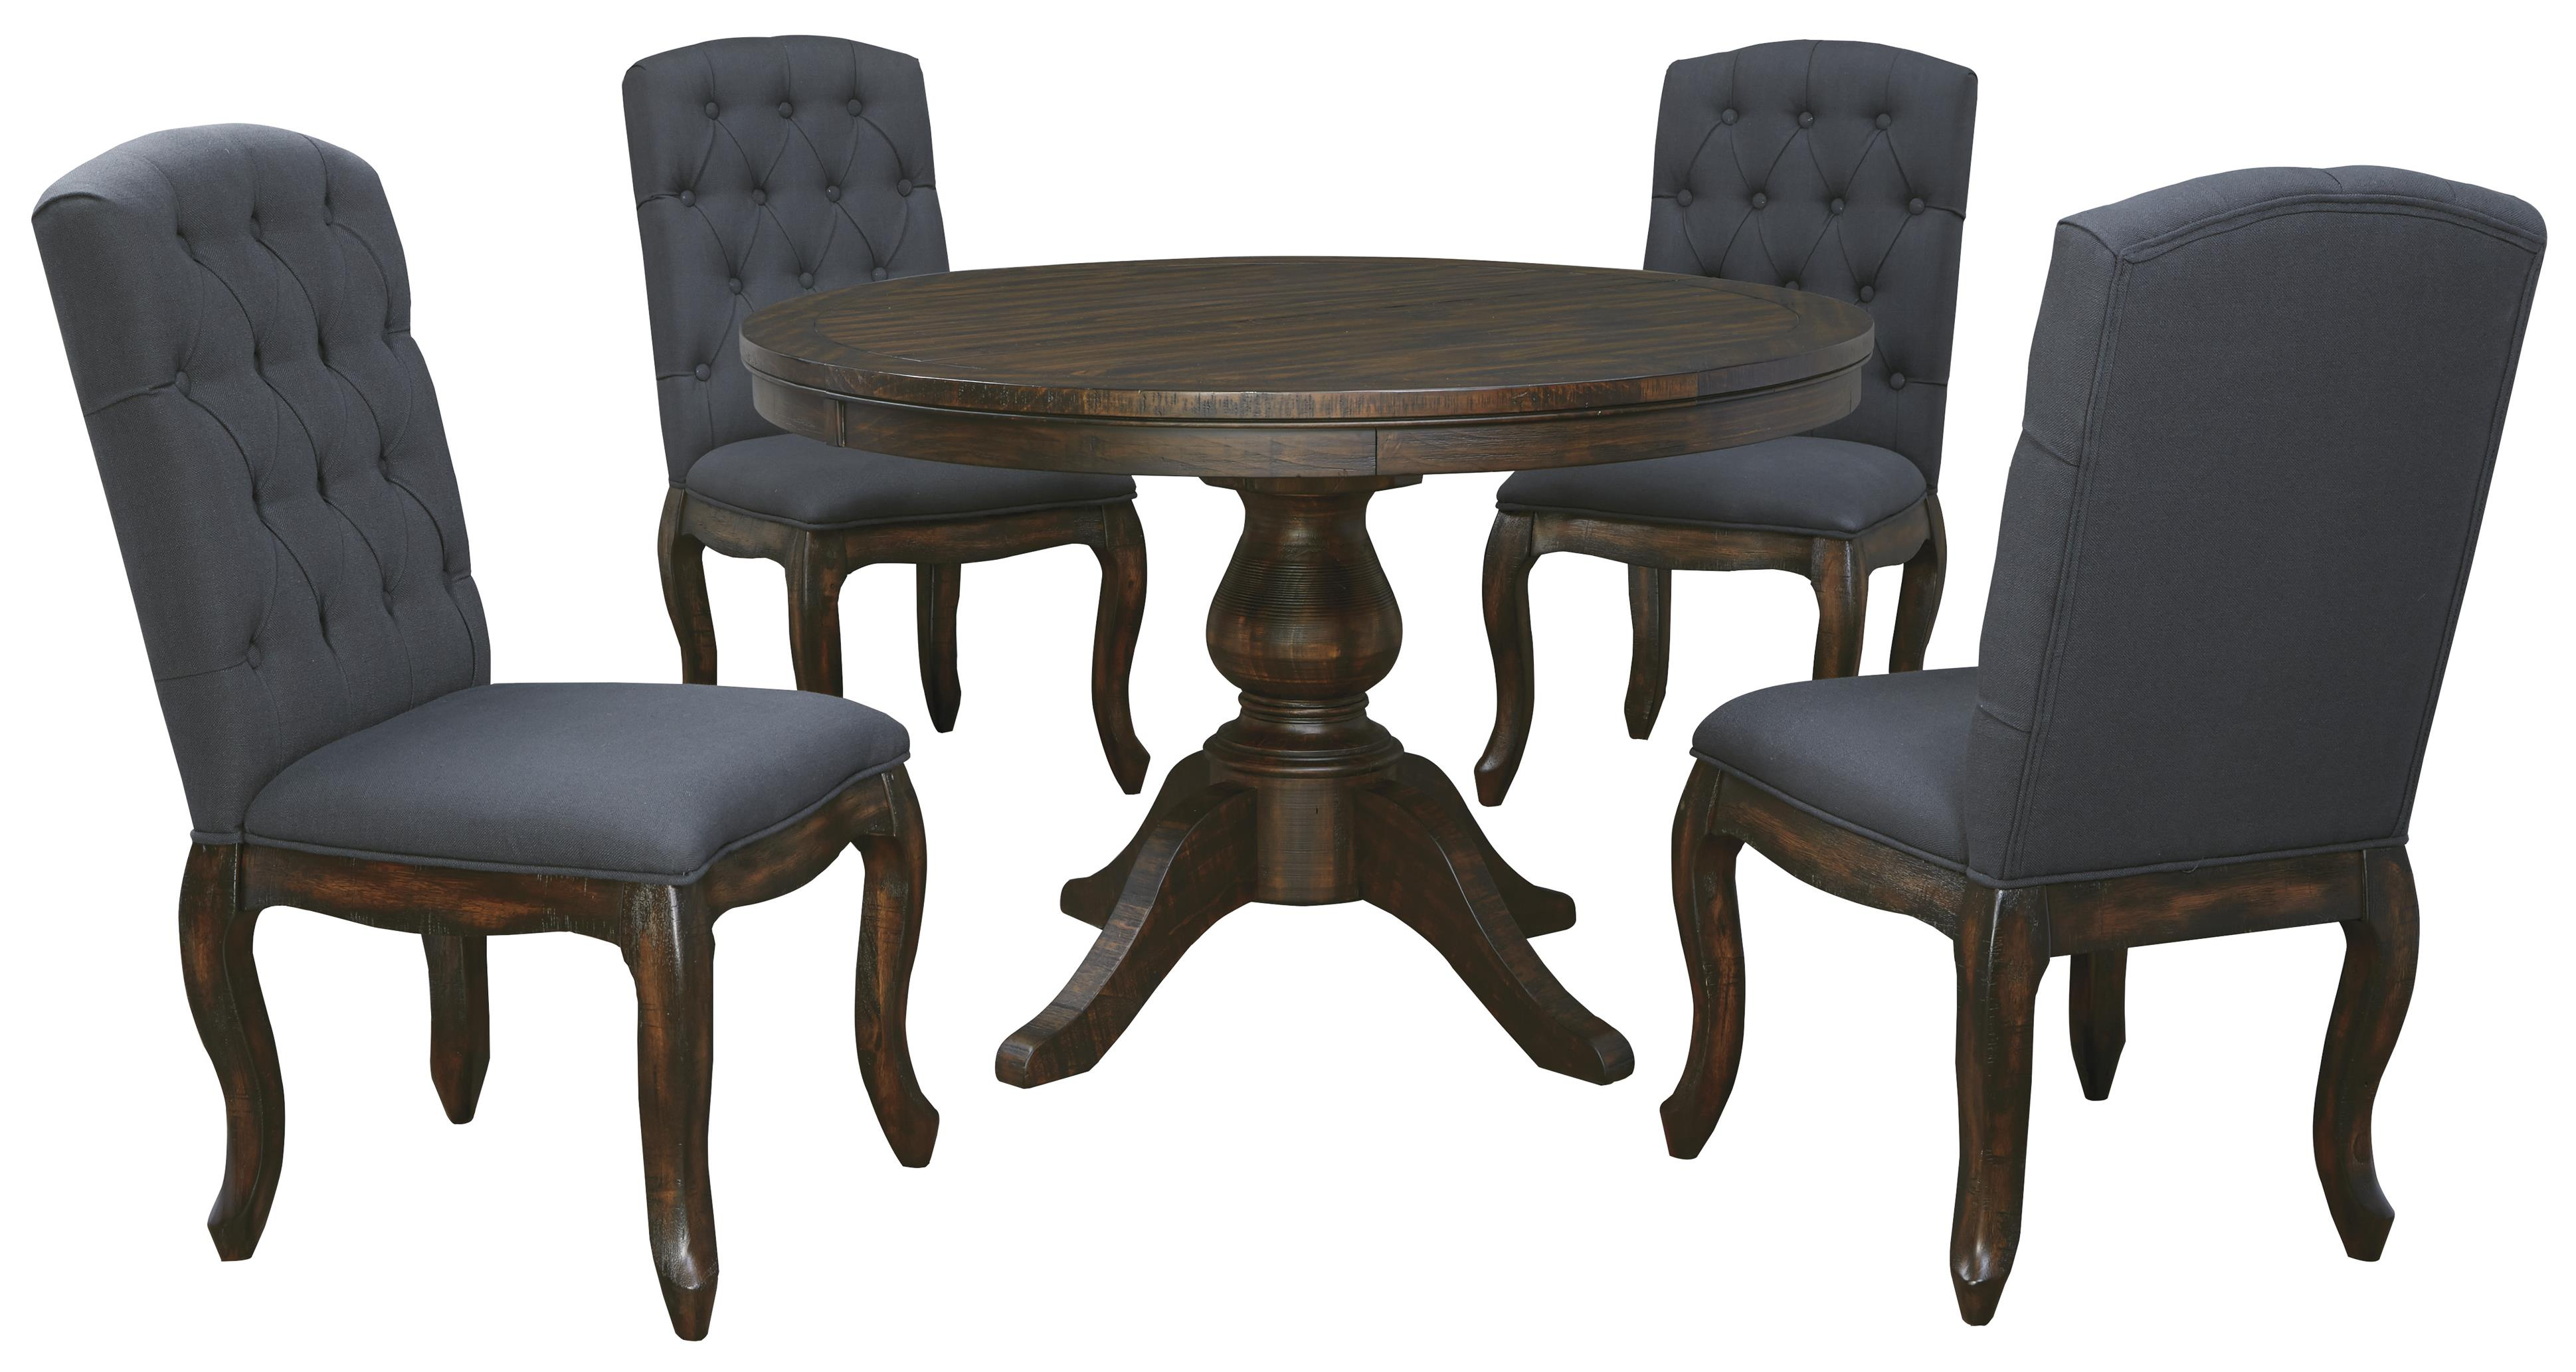 kitchen table and chairs Signature Design by Ashley Trudell 5 Piece Round Dining Table Set Item Number